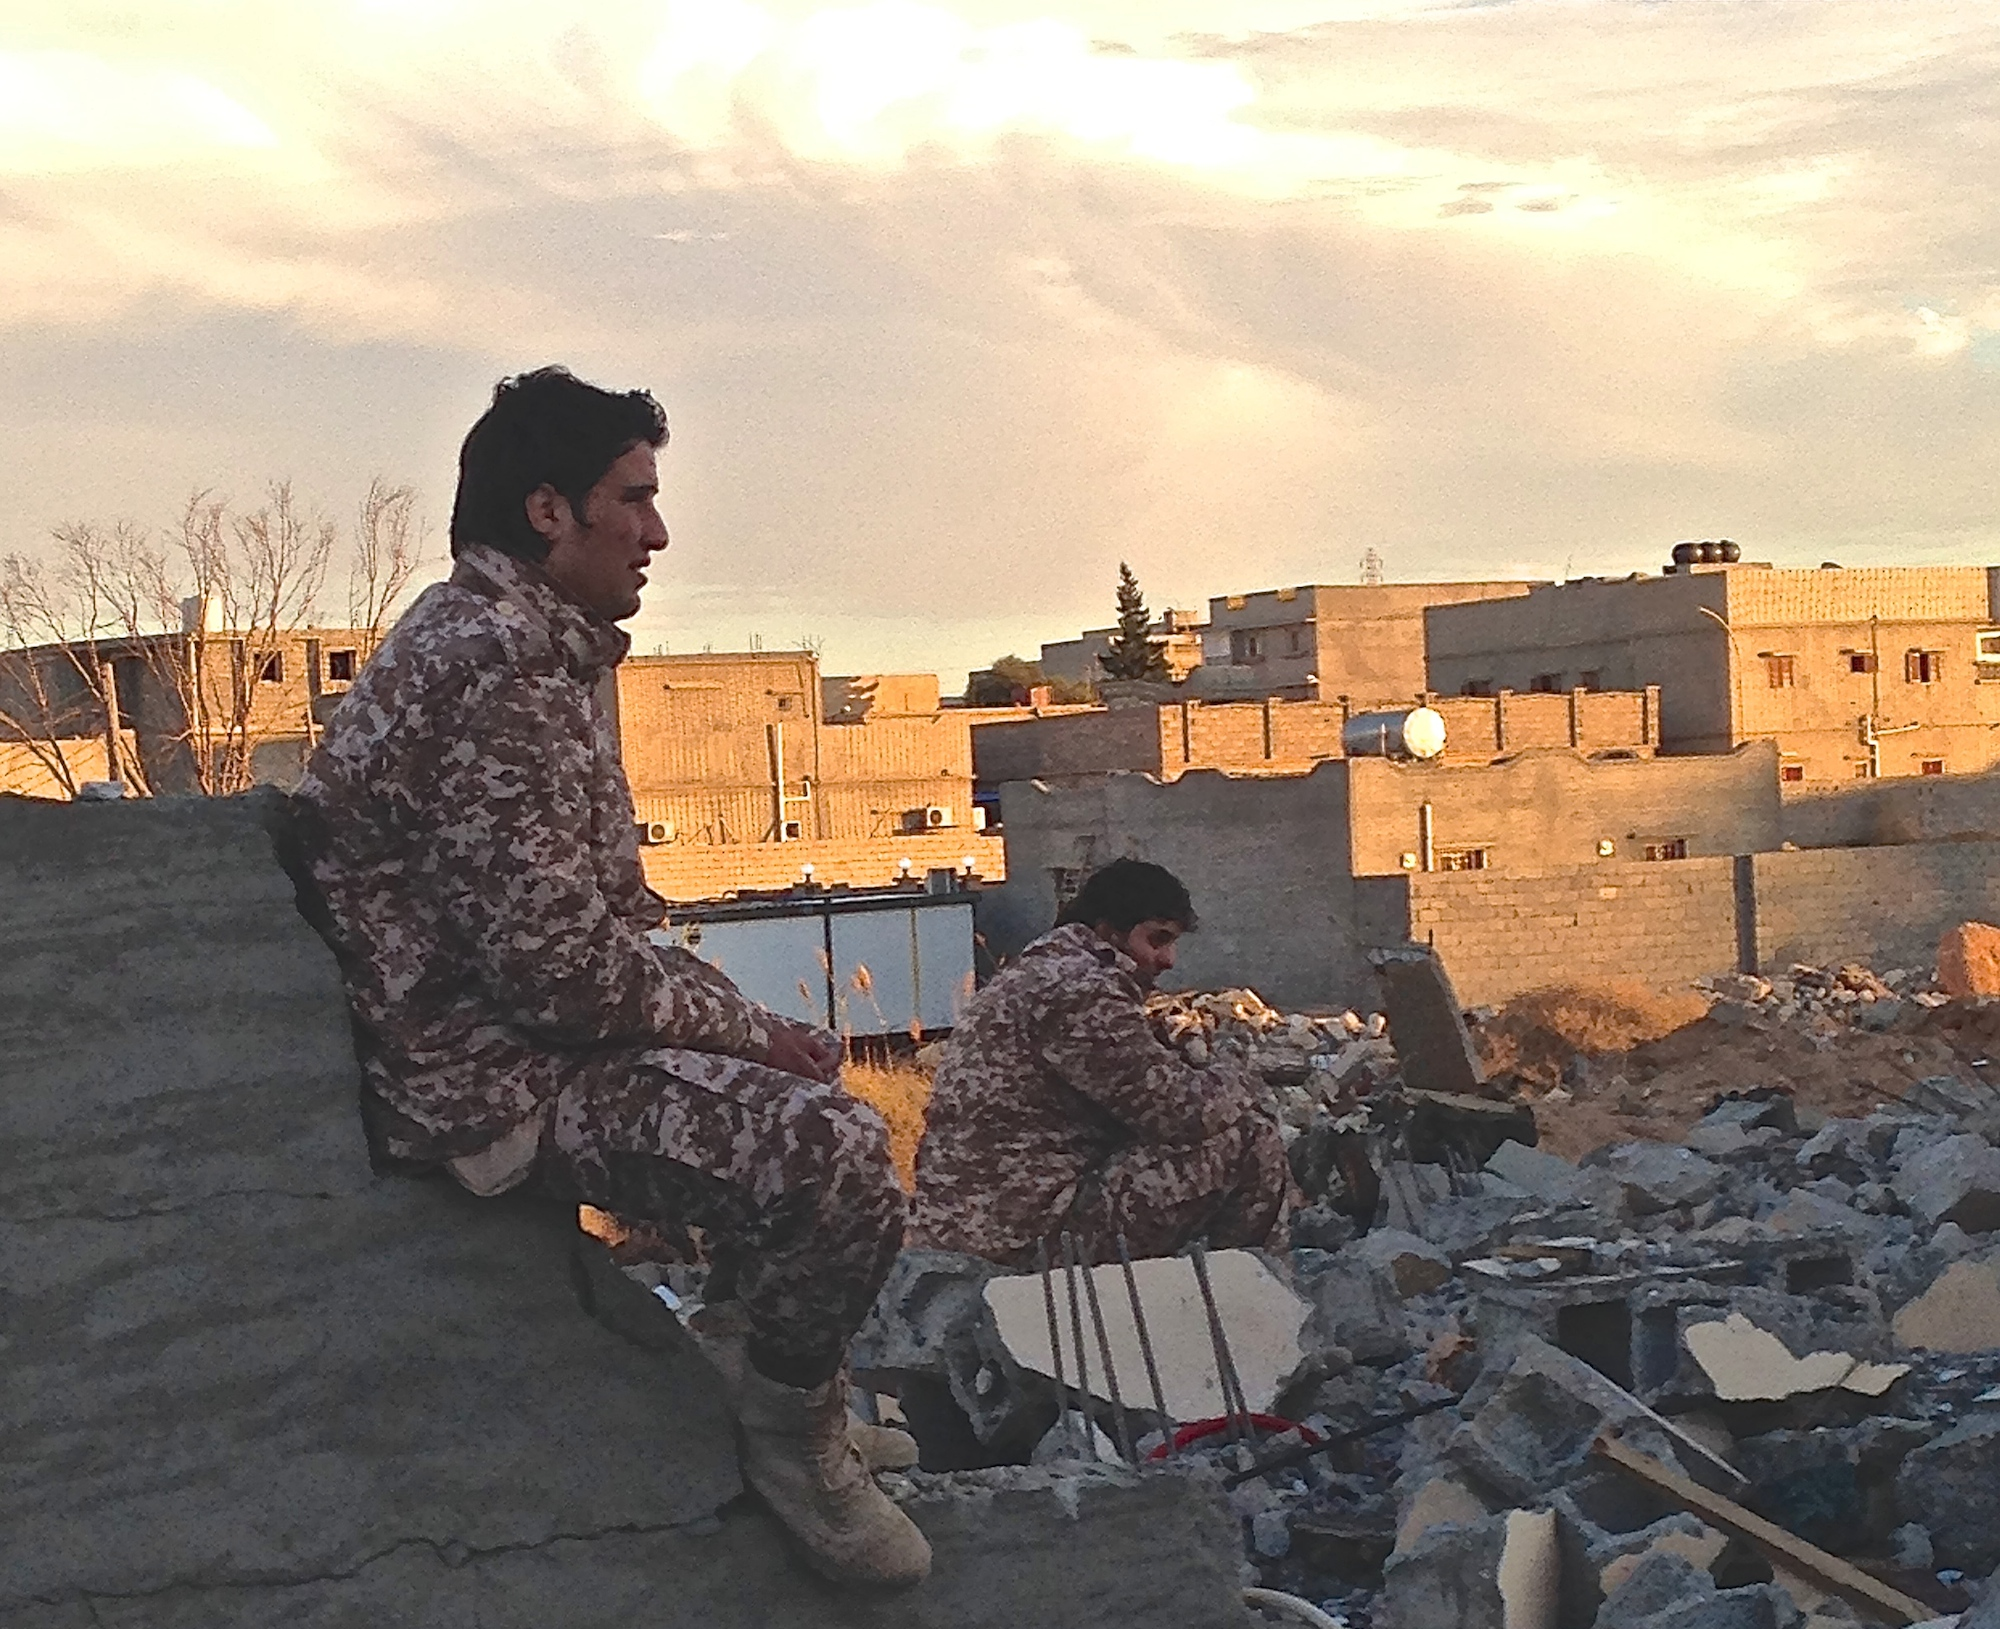 Dusk in the Libyan town of Ben Jawad, where two soldiers from forces operating under the Tripoli-based government sit by the rubble of another flattened home. The front-line, near Es Sidra oil port, is just 30 kilometres away.